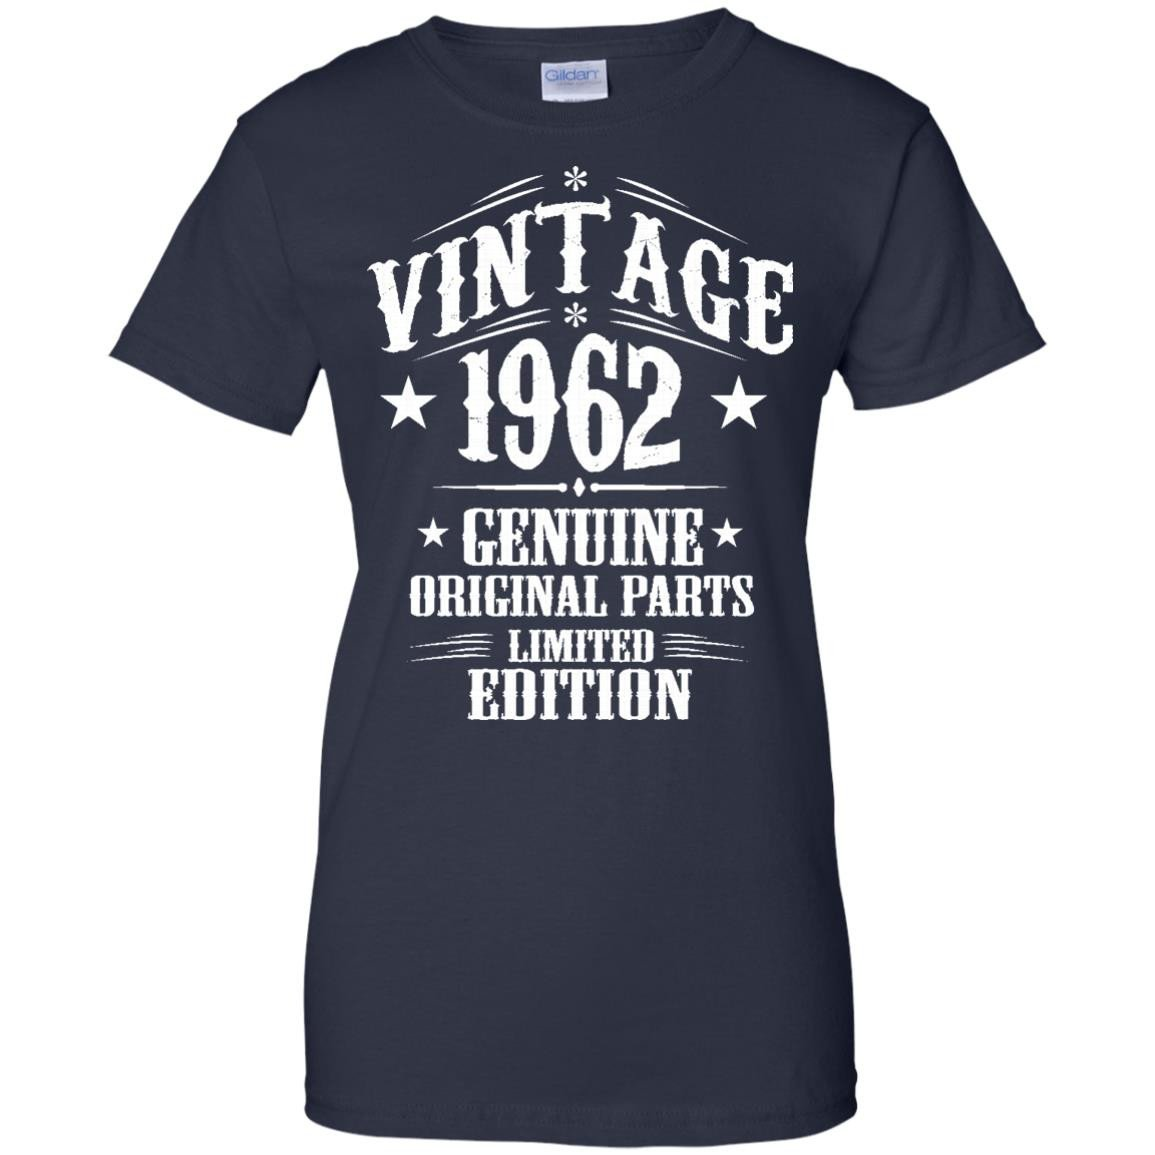 1962 Shirts Vintage 1968 Genuine Original Limited Edition T-shirts Hoodies Sweatshirts